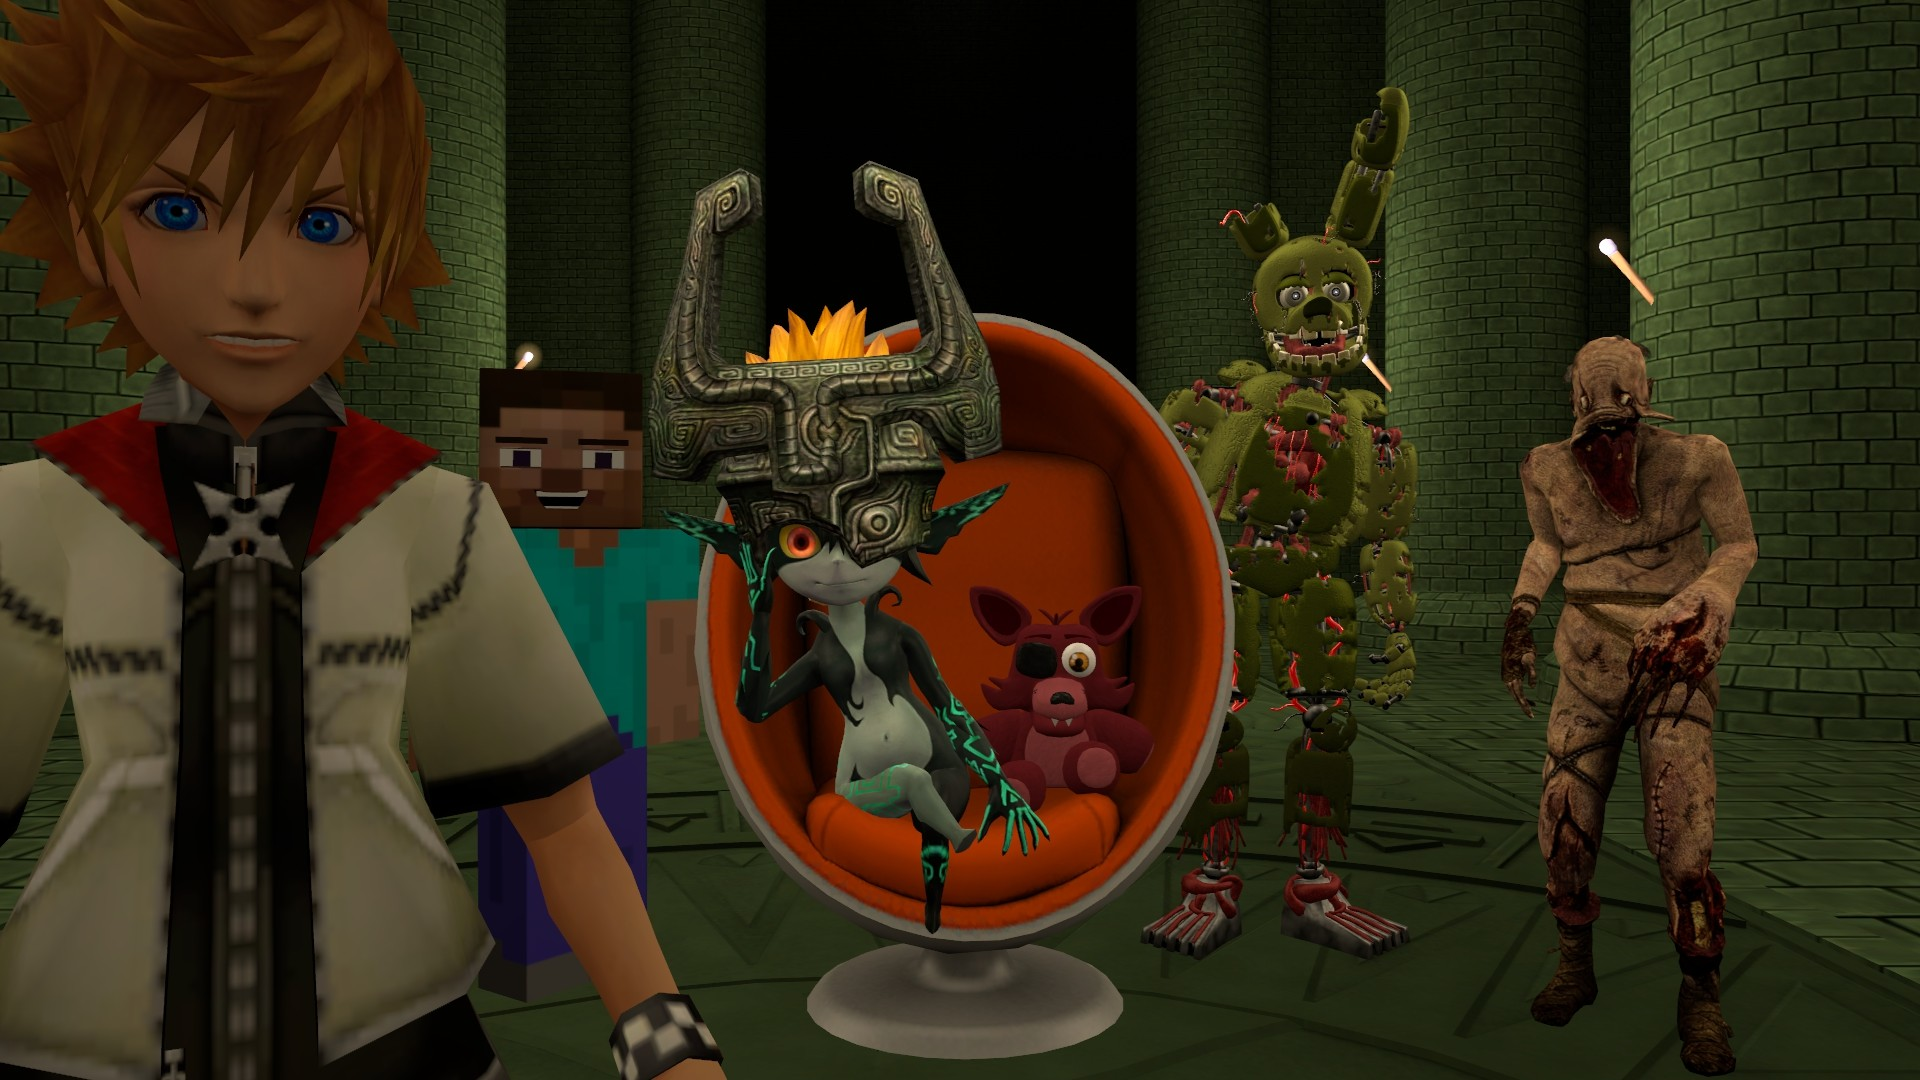 … SFM Midna and Friends